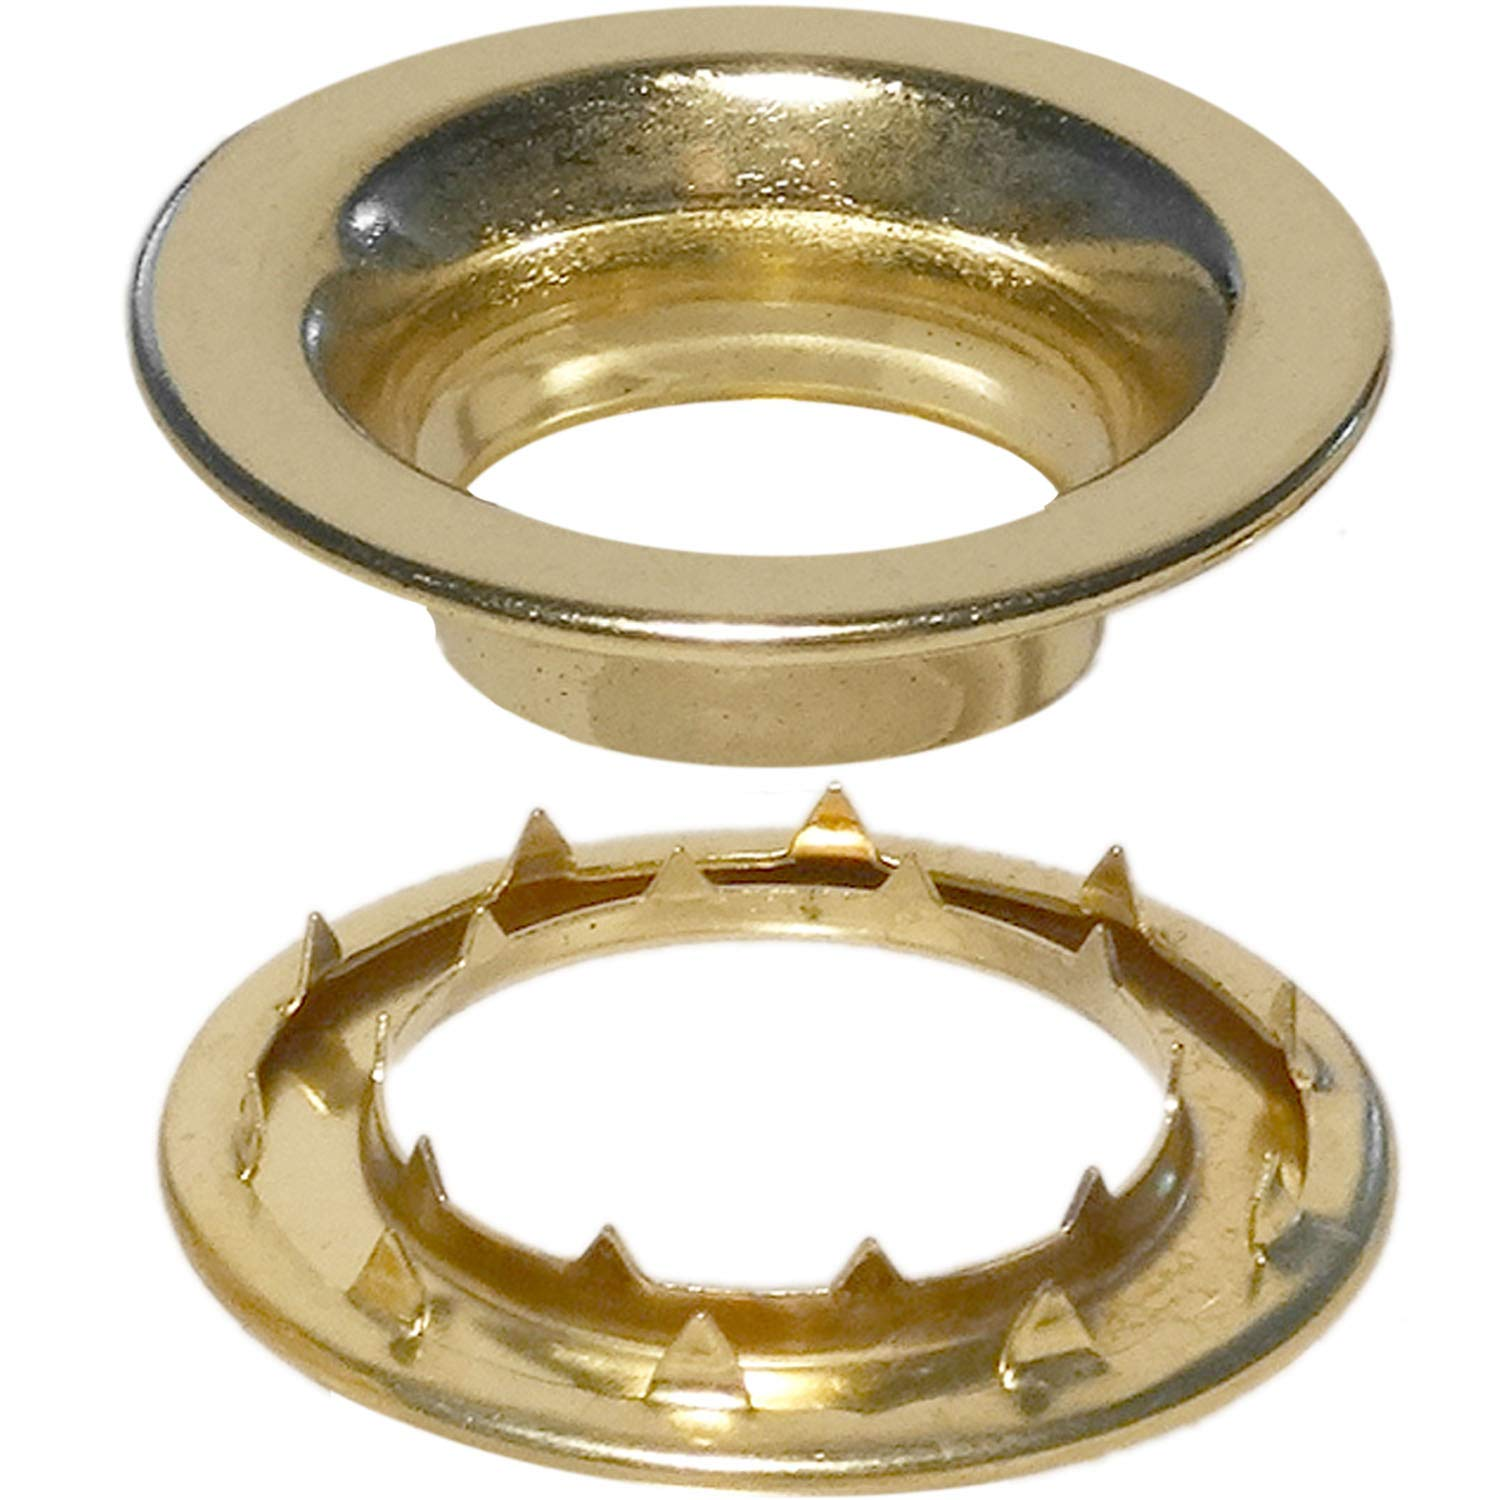 Stimpson Rolled Rim Grommet and Spur Washer Brass Durable, Reliable, Heavy-Duty #8 Set (25 Pieces of Each) Stimpson Co. Inc.